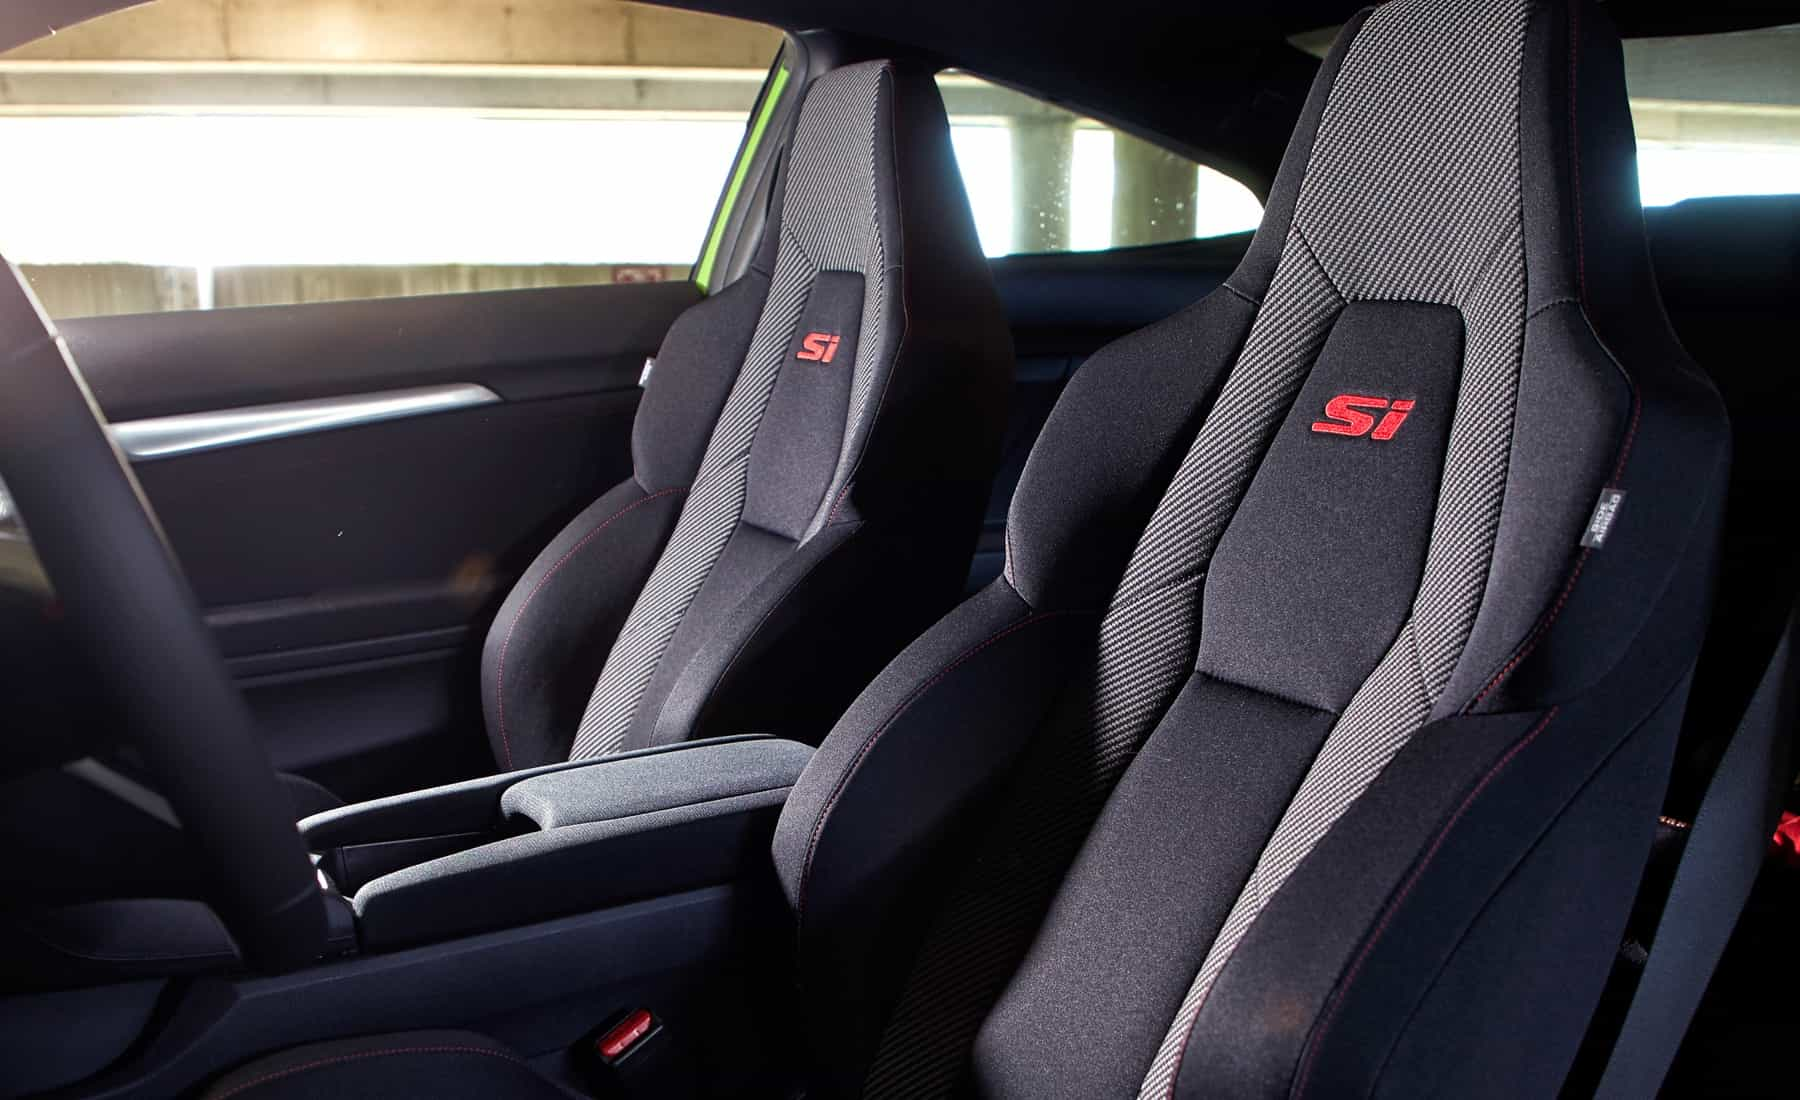 2017 Honda Civic Si Coupe Interior Seats Front (Photo 6 Of 19)